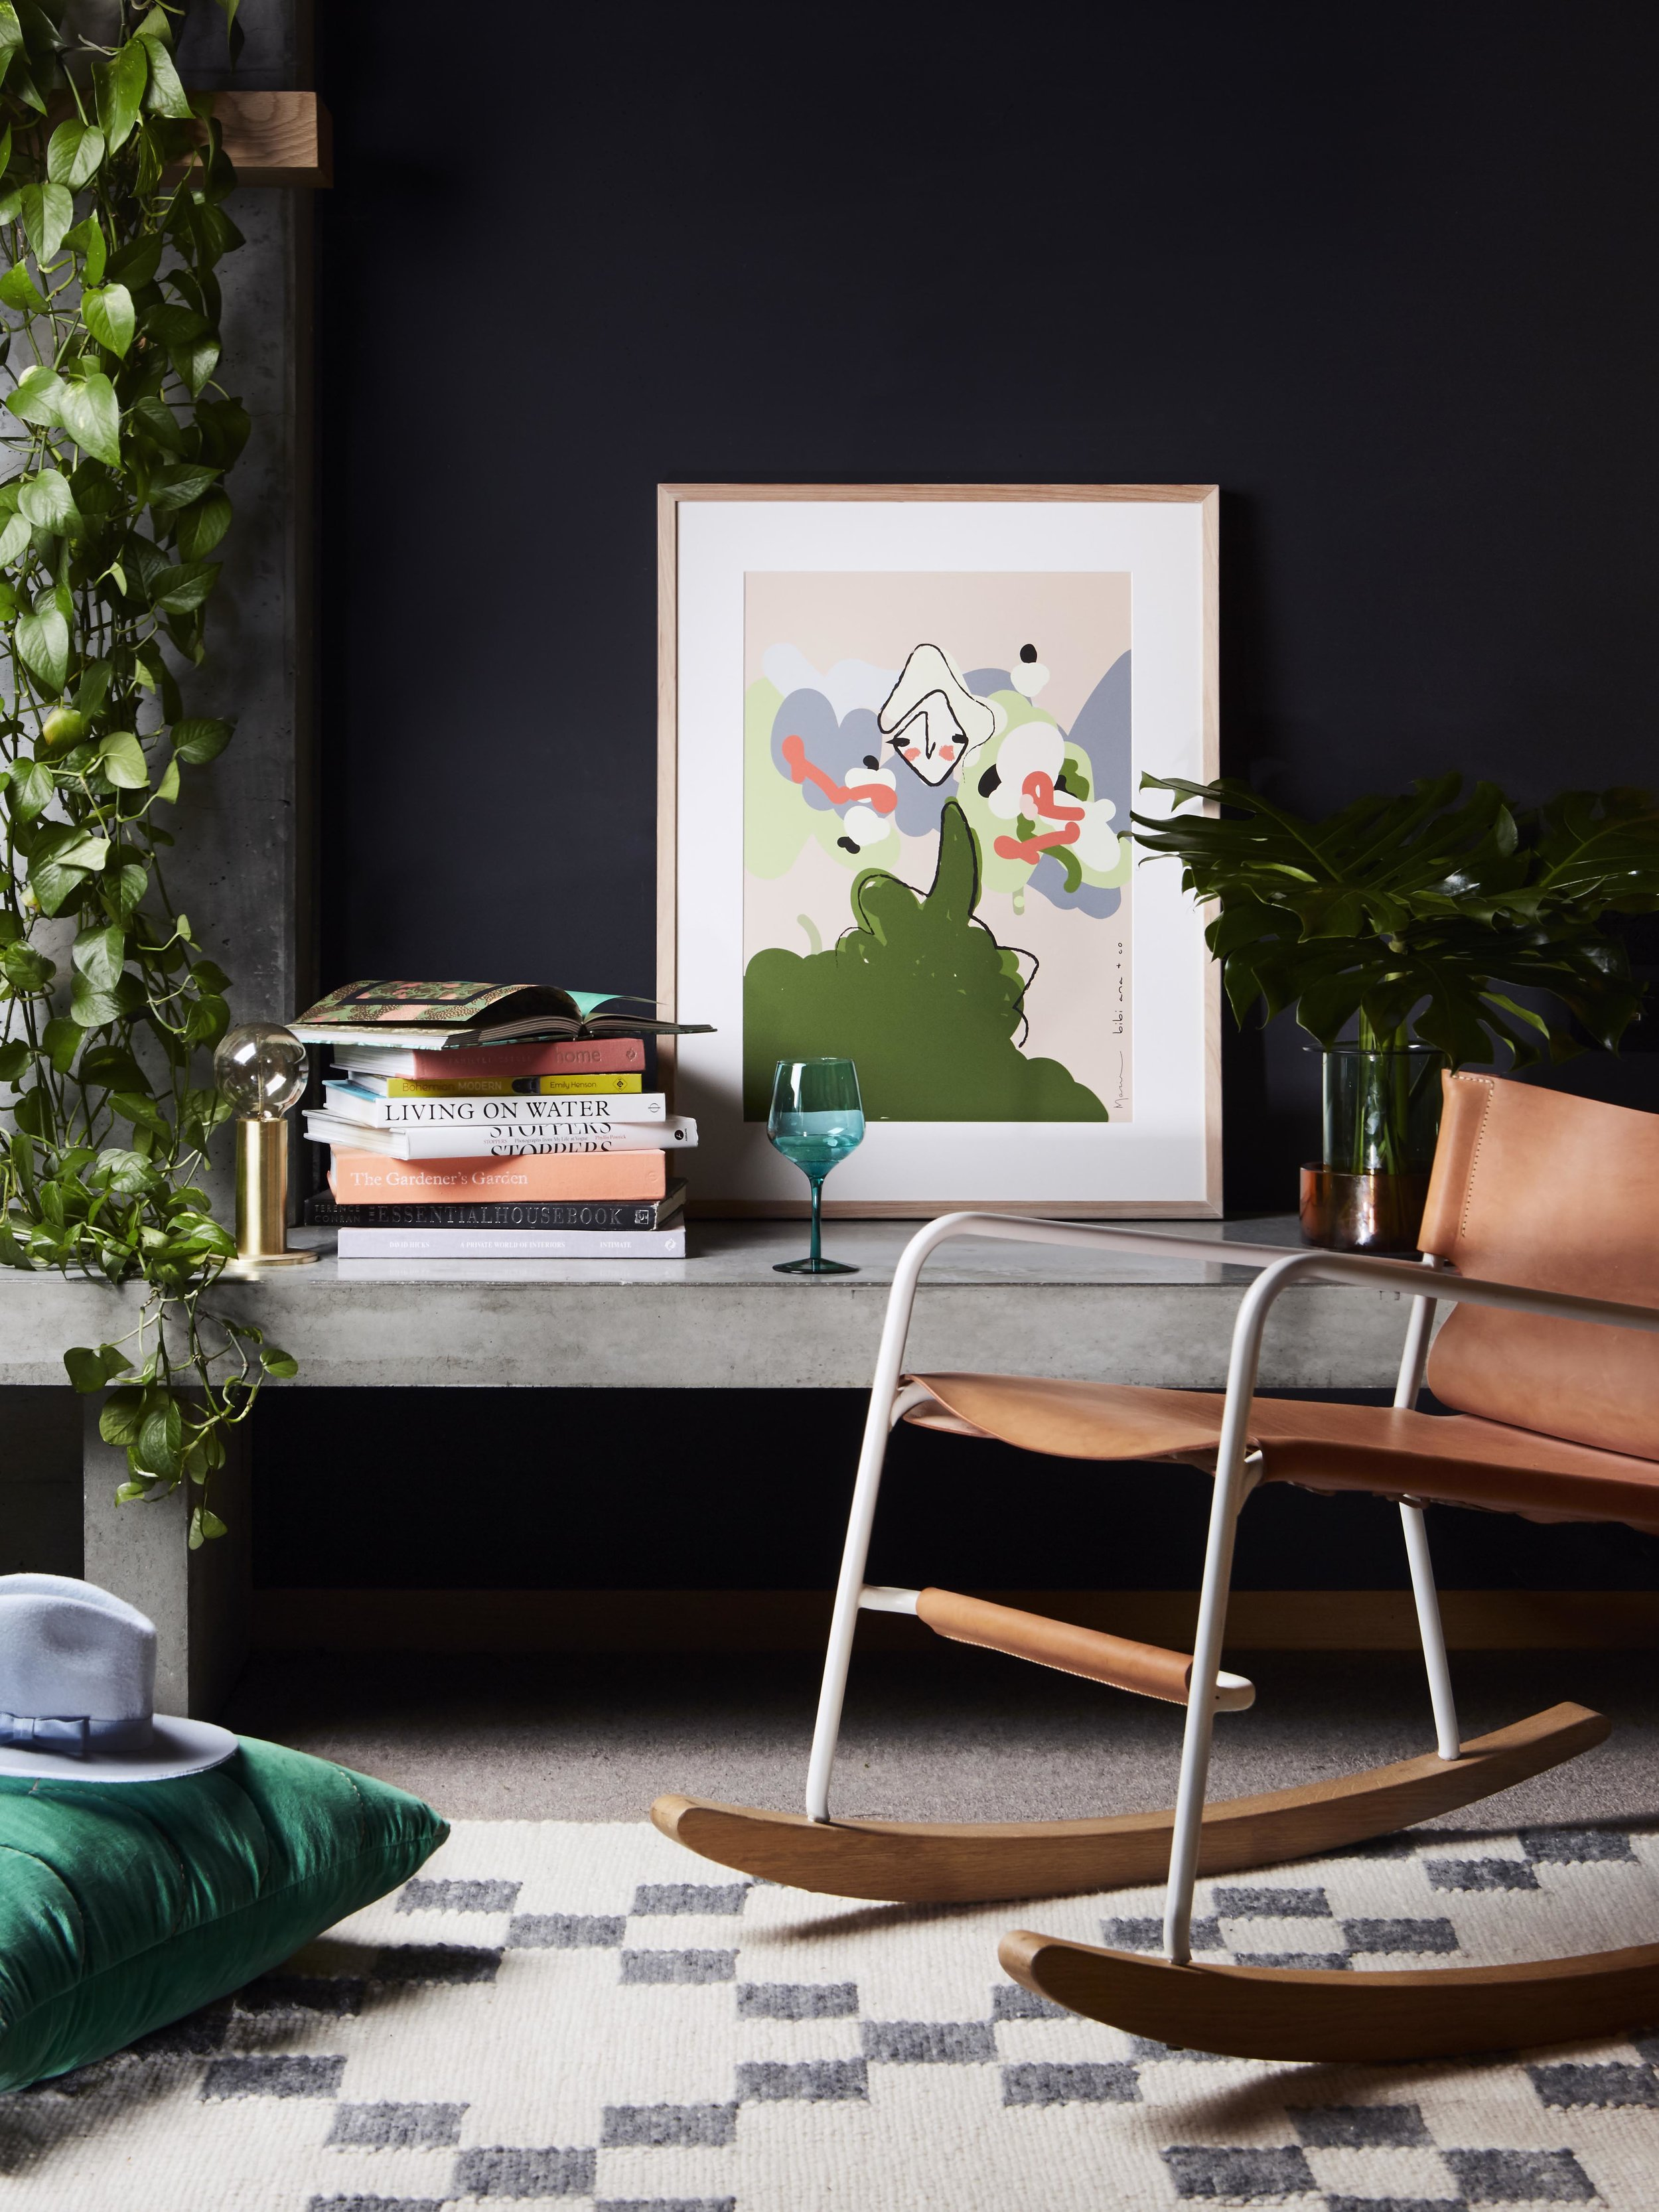 Greenhouse Interiors - Julia Green shares her advice for those wishing to launch a career in styling on Homes To Love